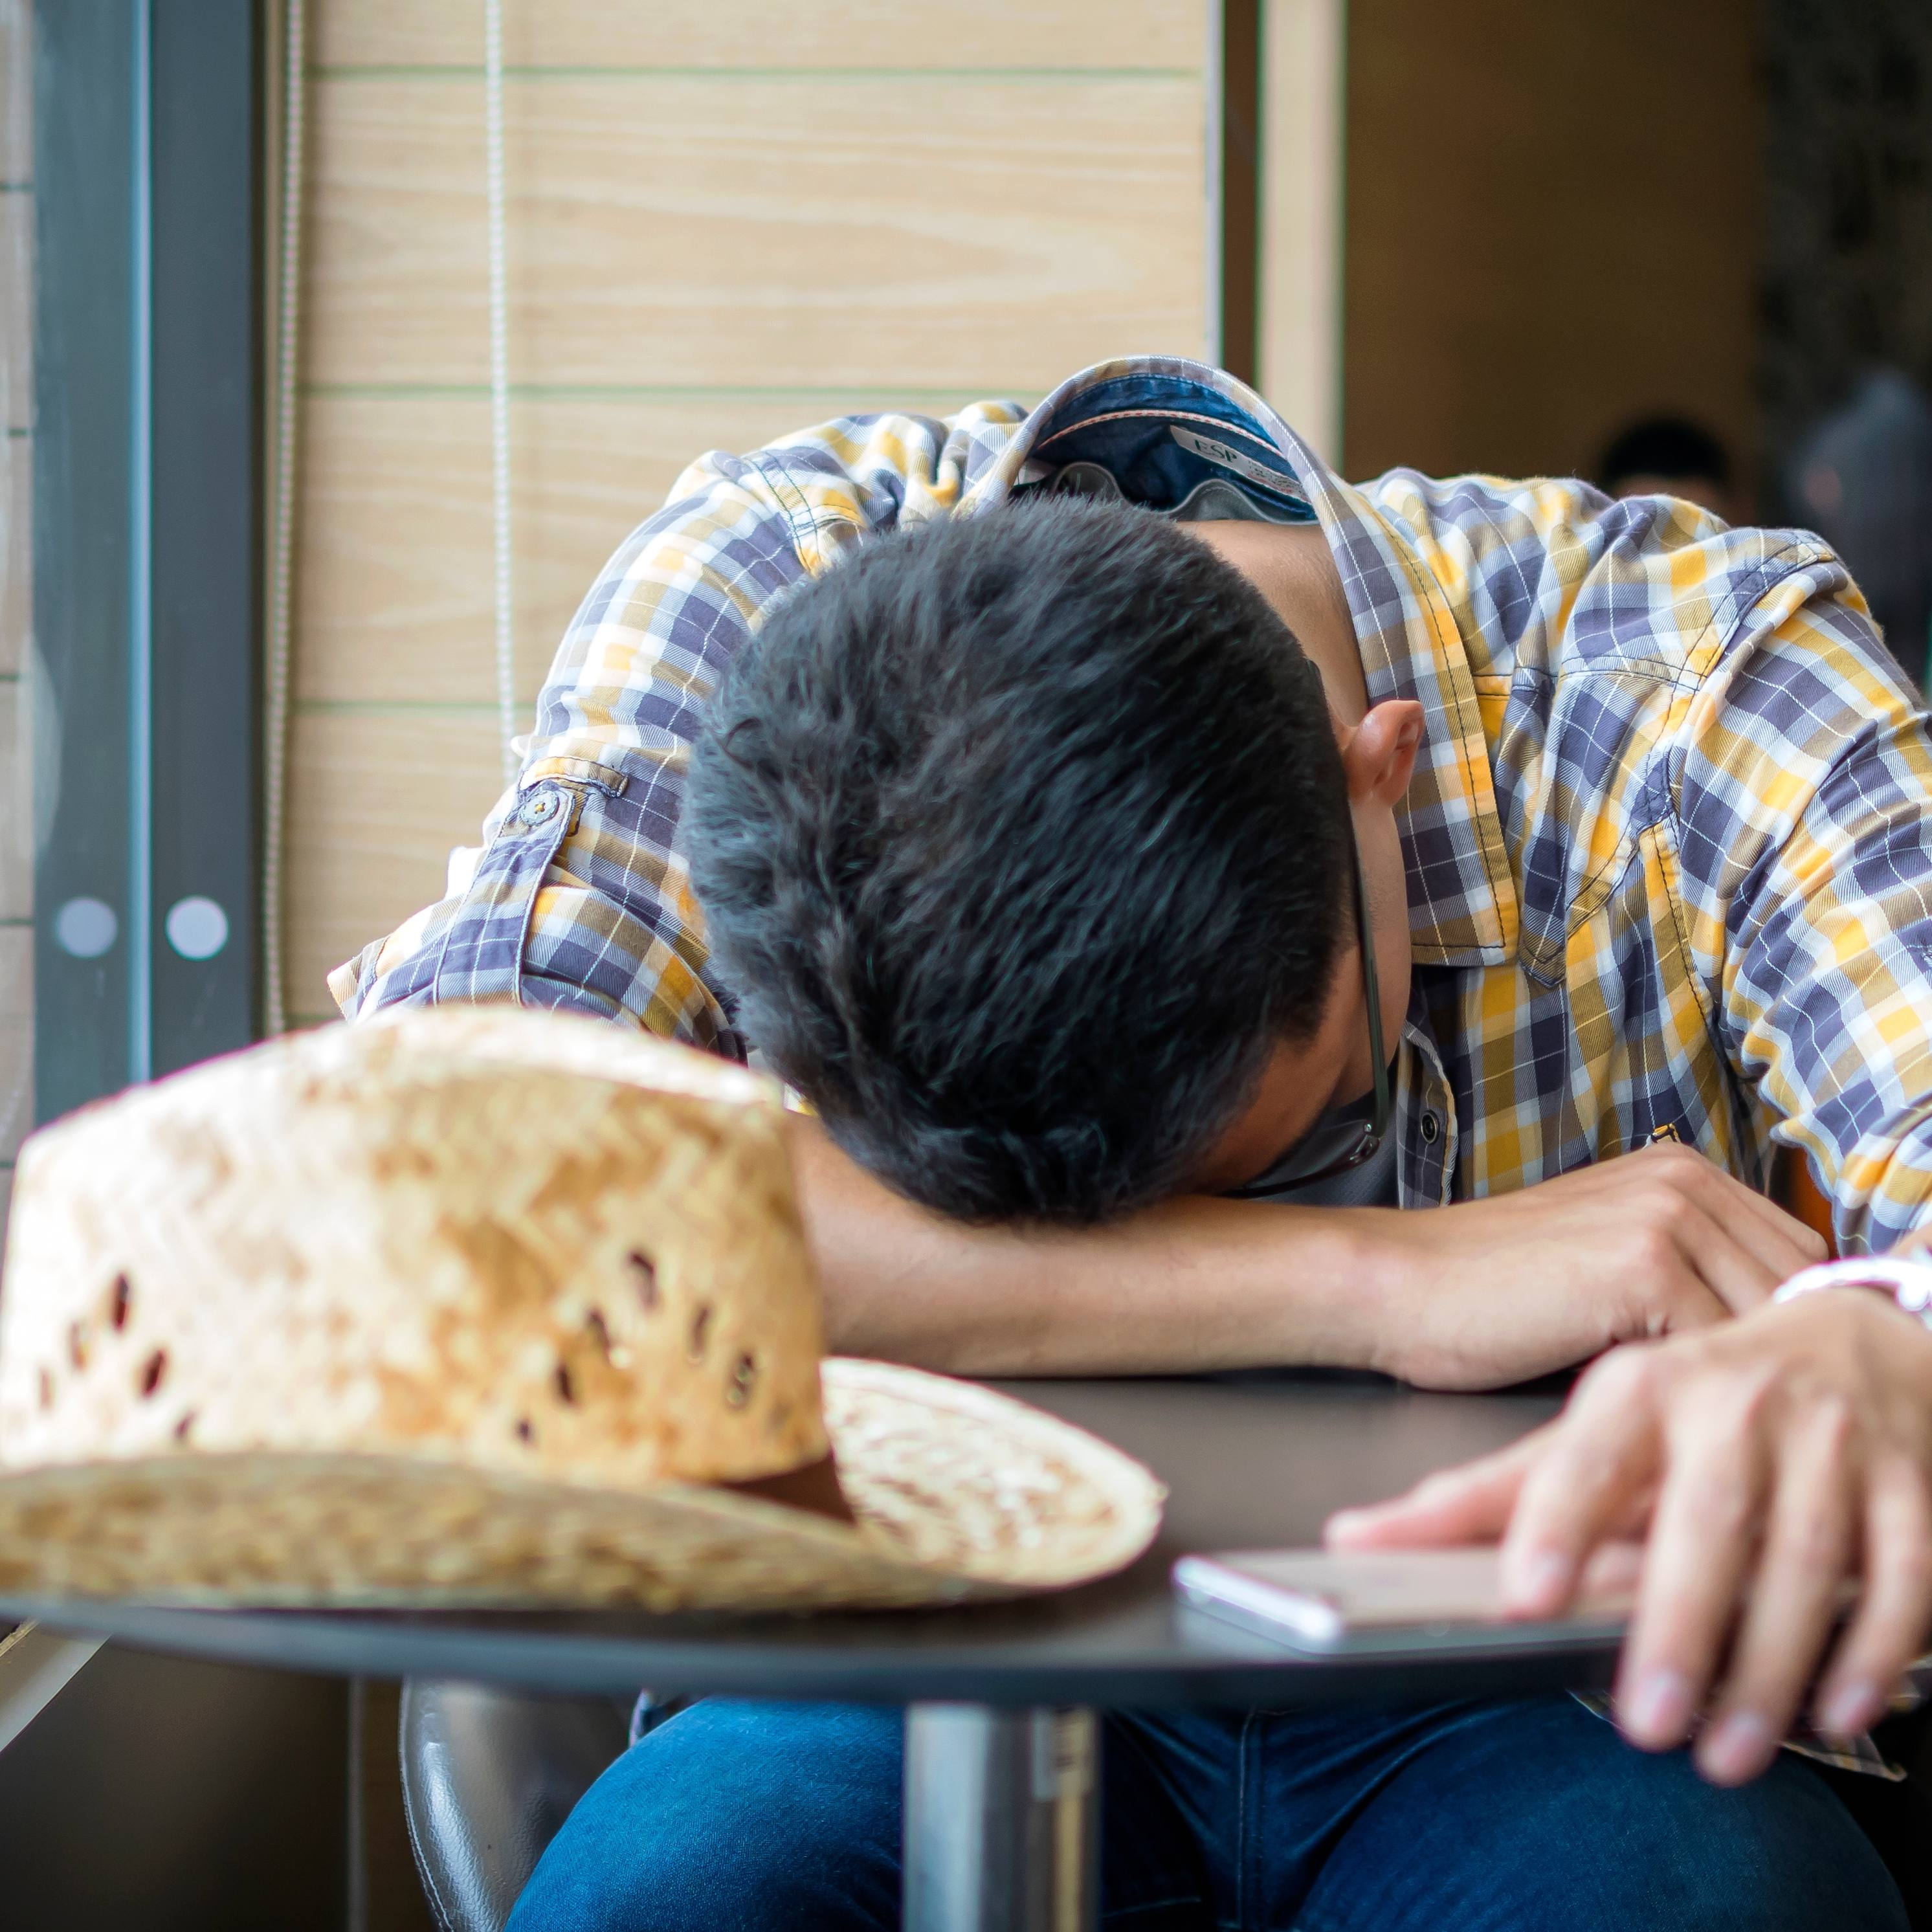 a young man, perhaps a farmer, looking sad, tired, depressed with his hat on a table and his head down on his arm.